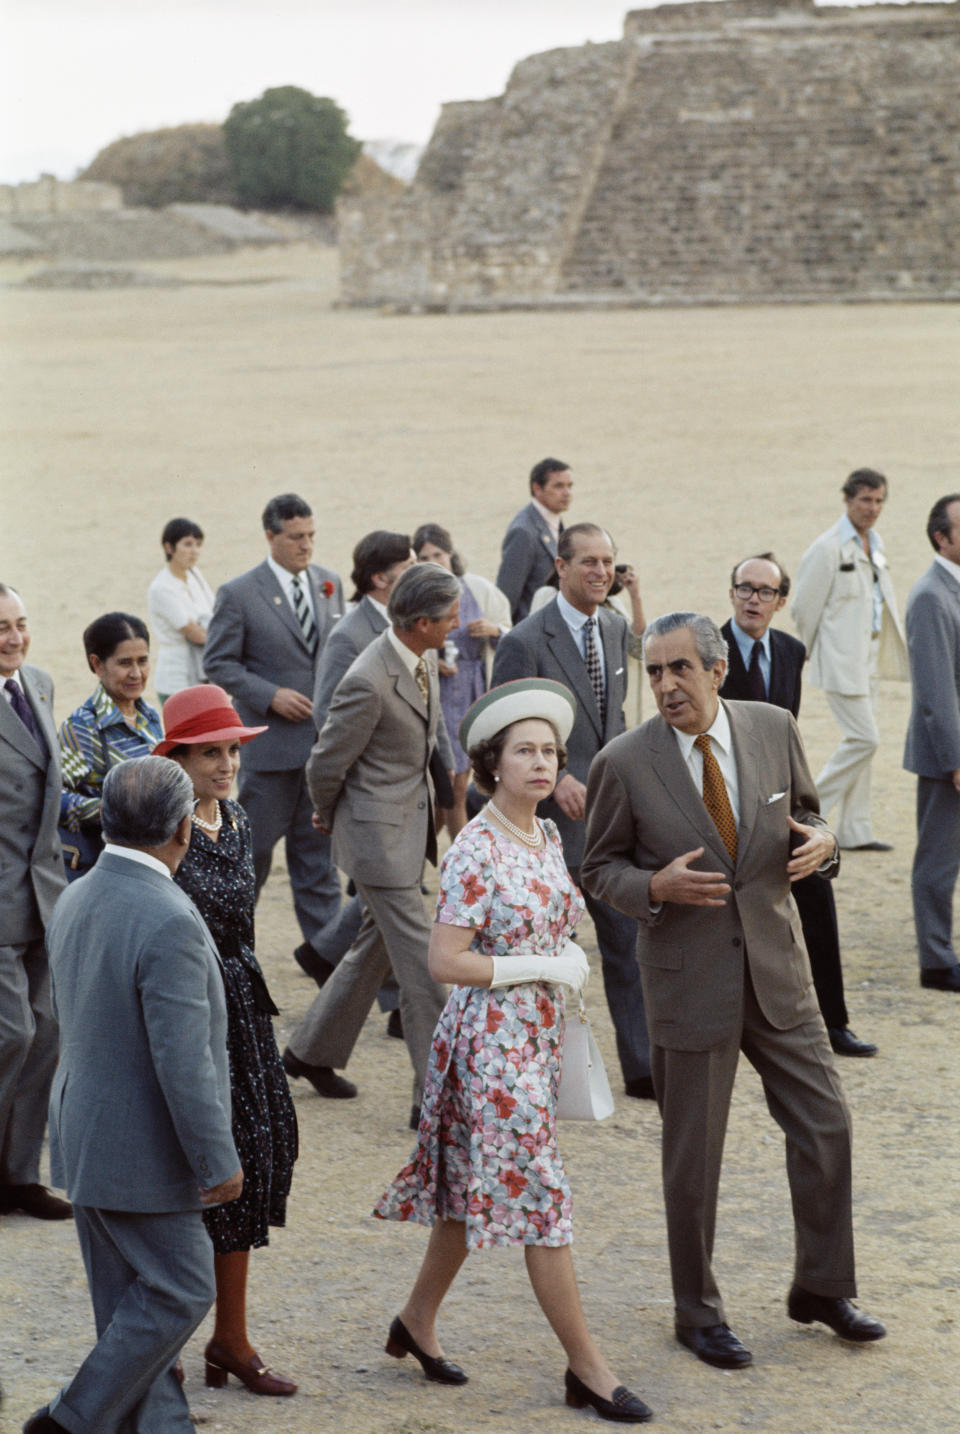 Queen Elizabeth II and Prince Philip visit an ancient ruin during their state visit to Mexico, 1975. (Photo by Serge Lemoine/Getty Images)